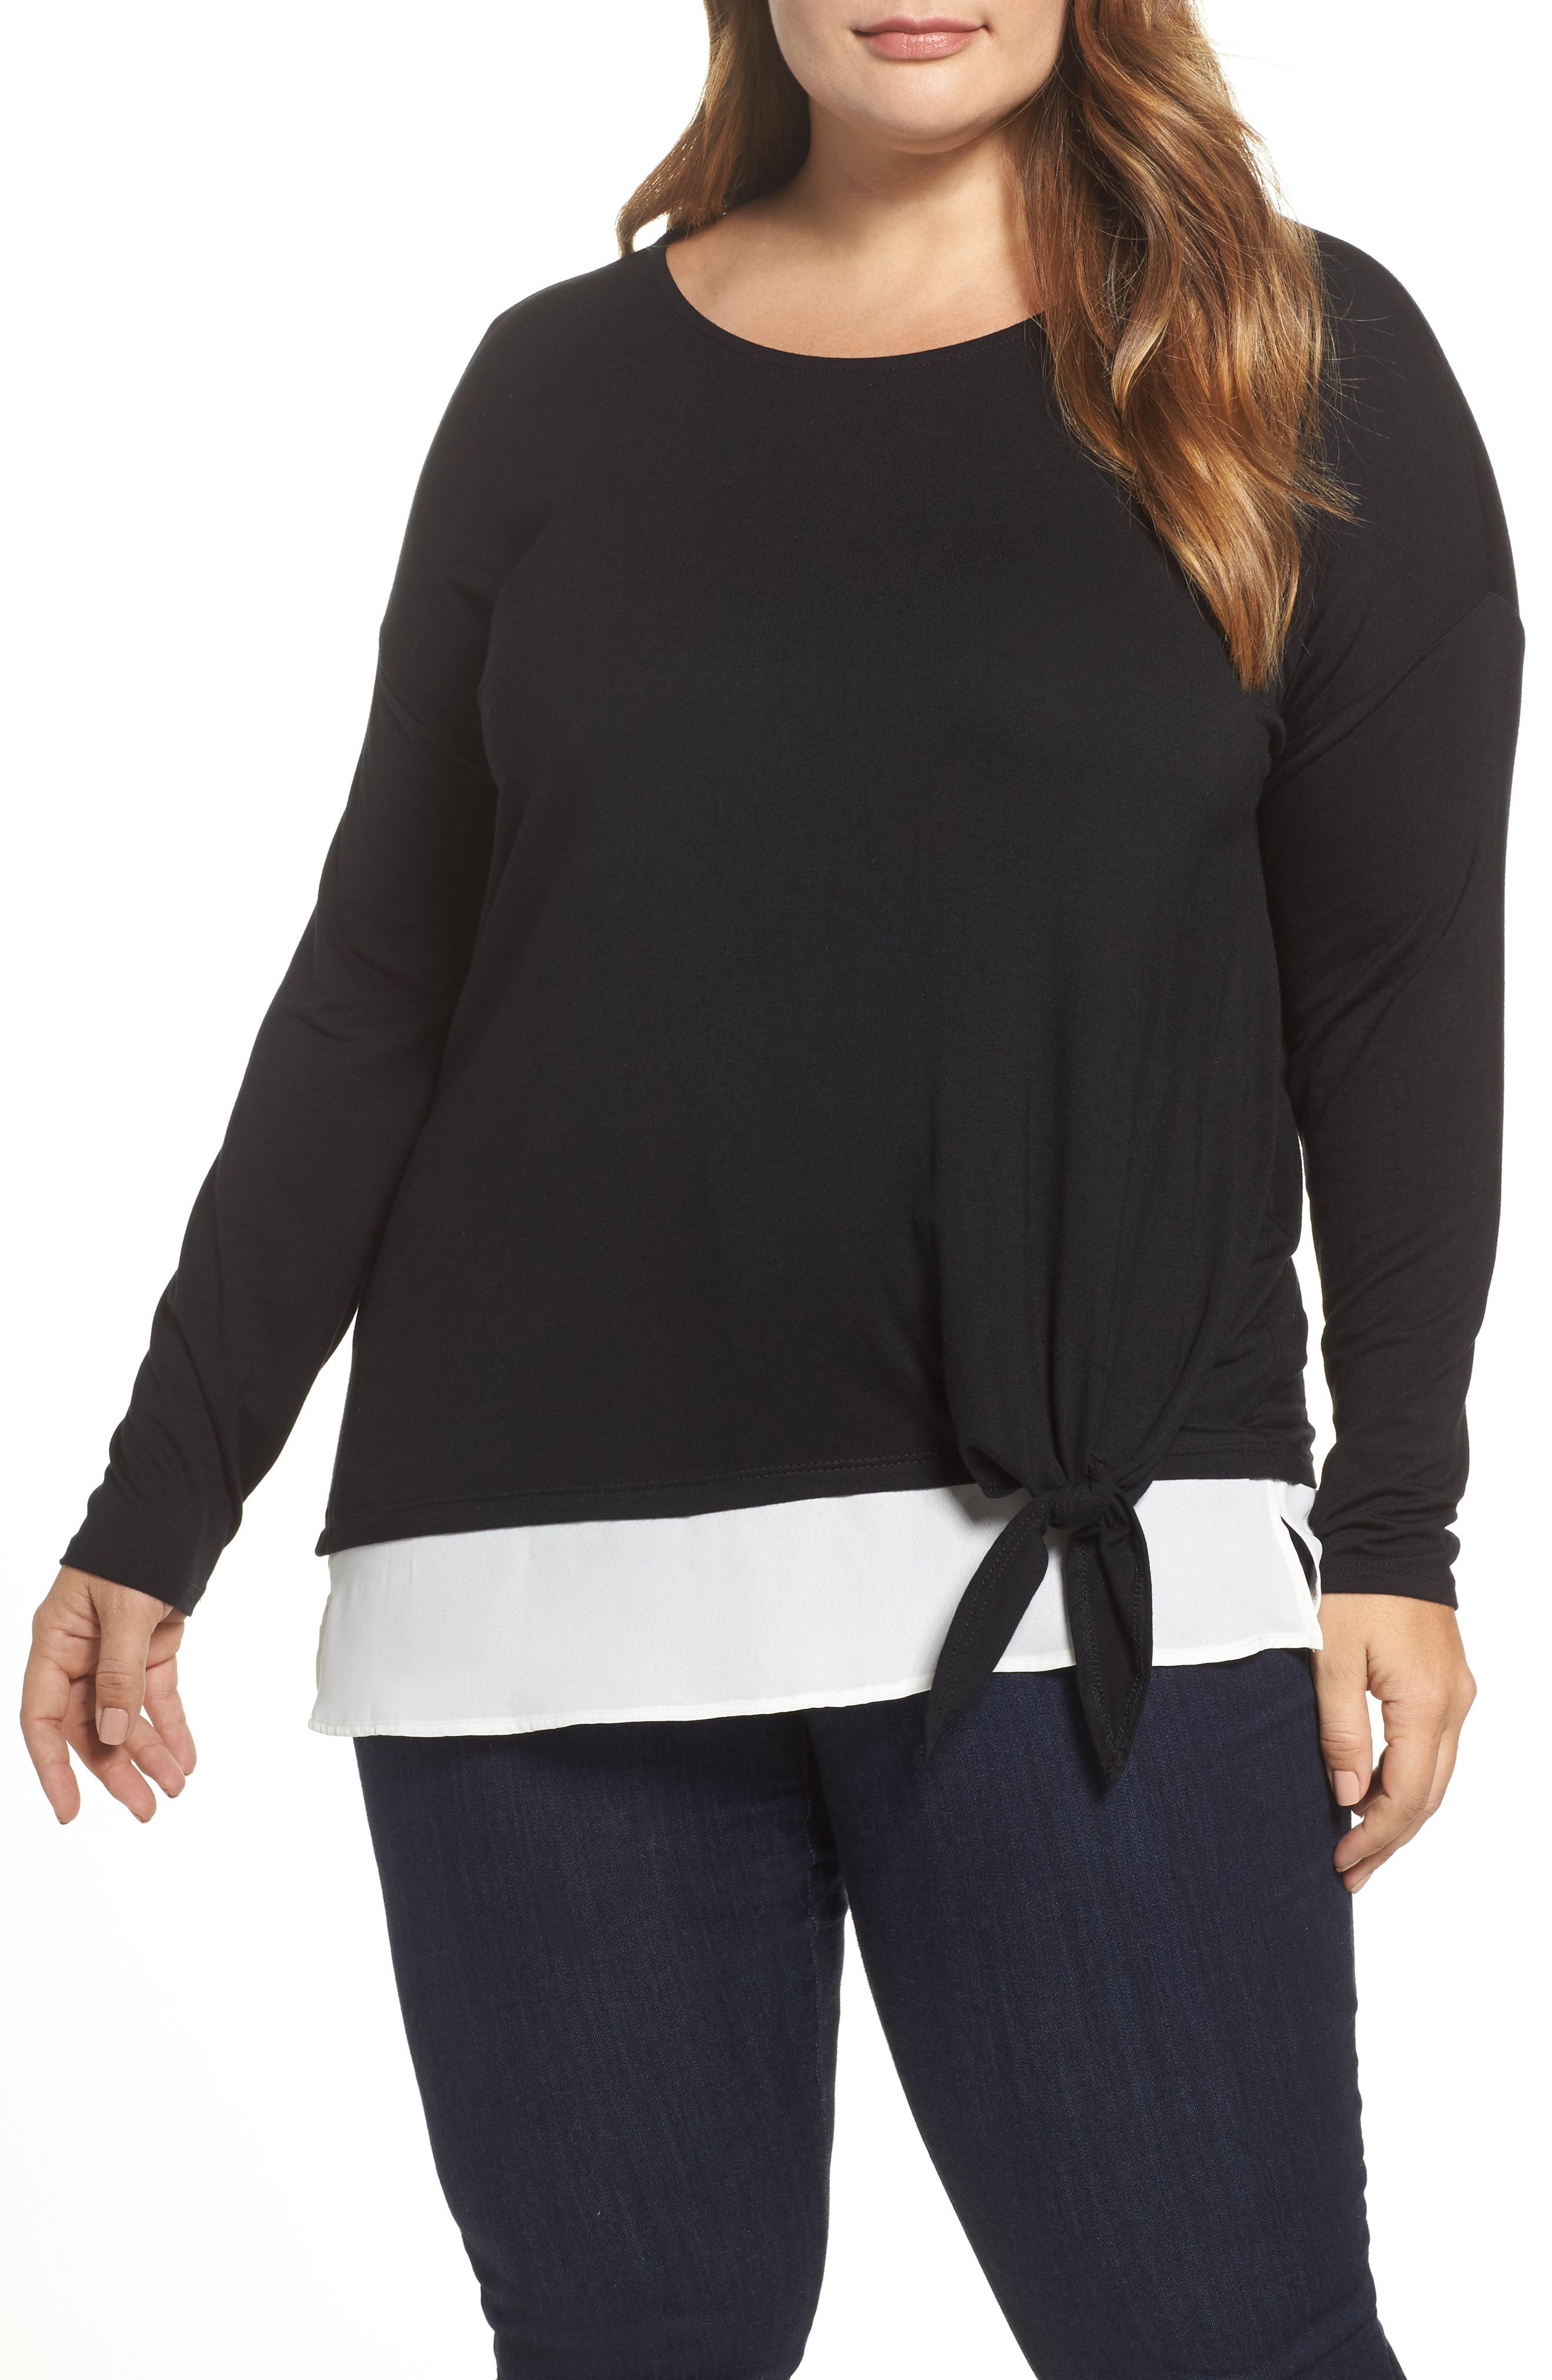 Main Image - Sejour Layered Look Tie Hem Top (Plus Size)